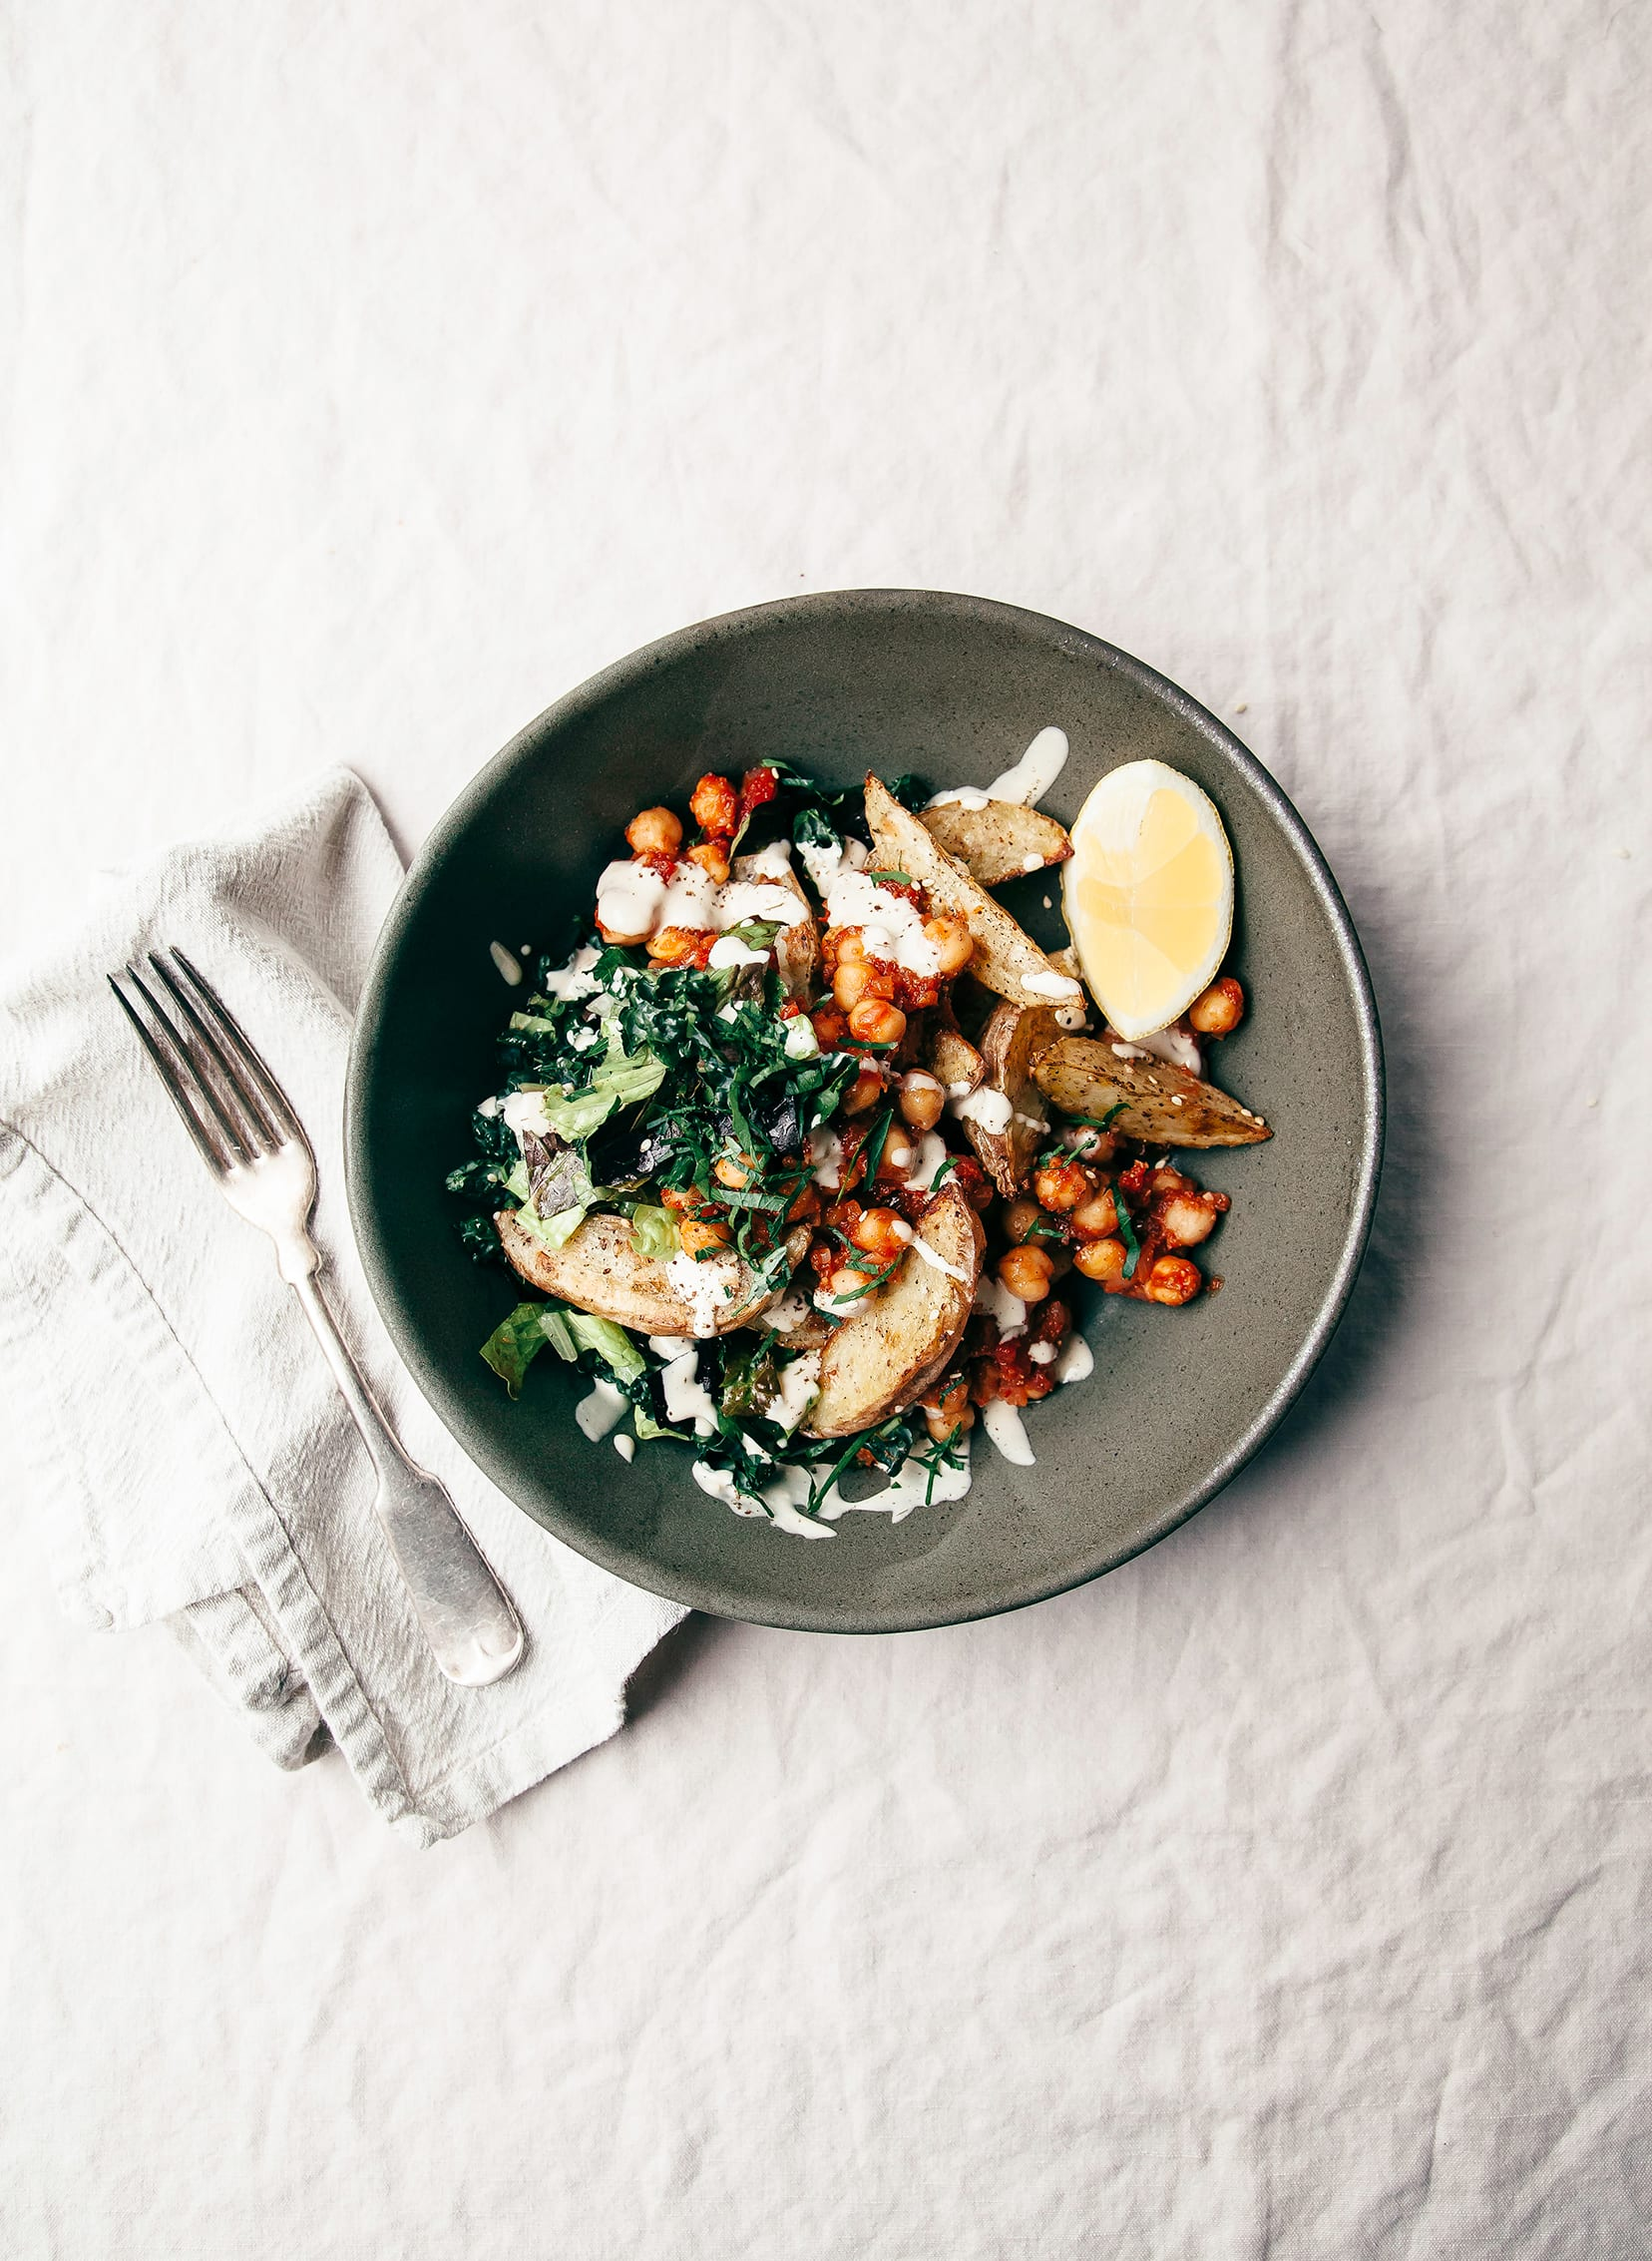 Harissa Chickpea Bowl with Potatoes, Lemon-y Tahini & Greens - The First Mess